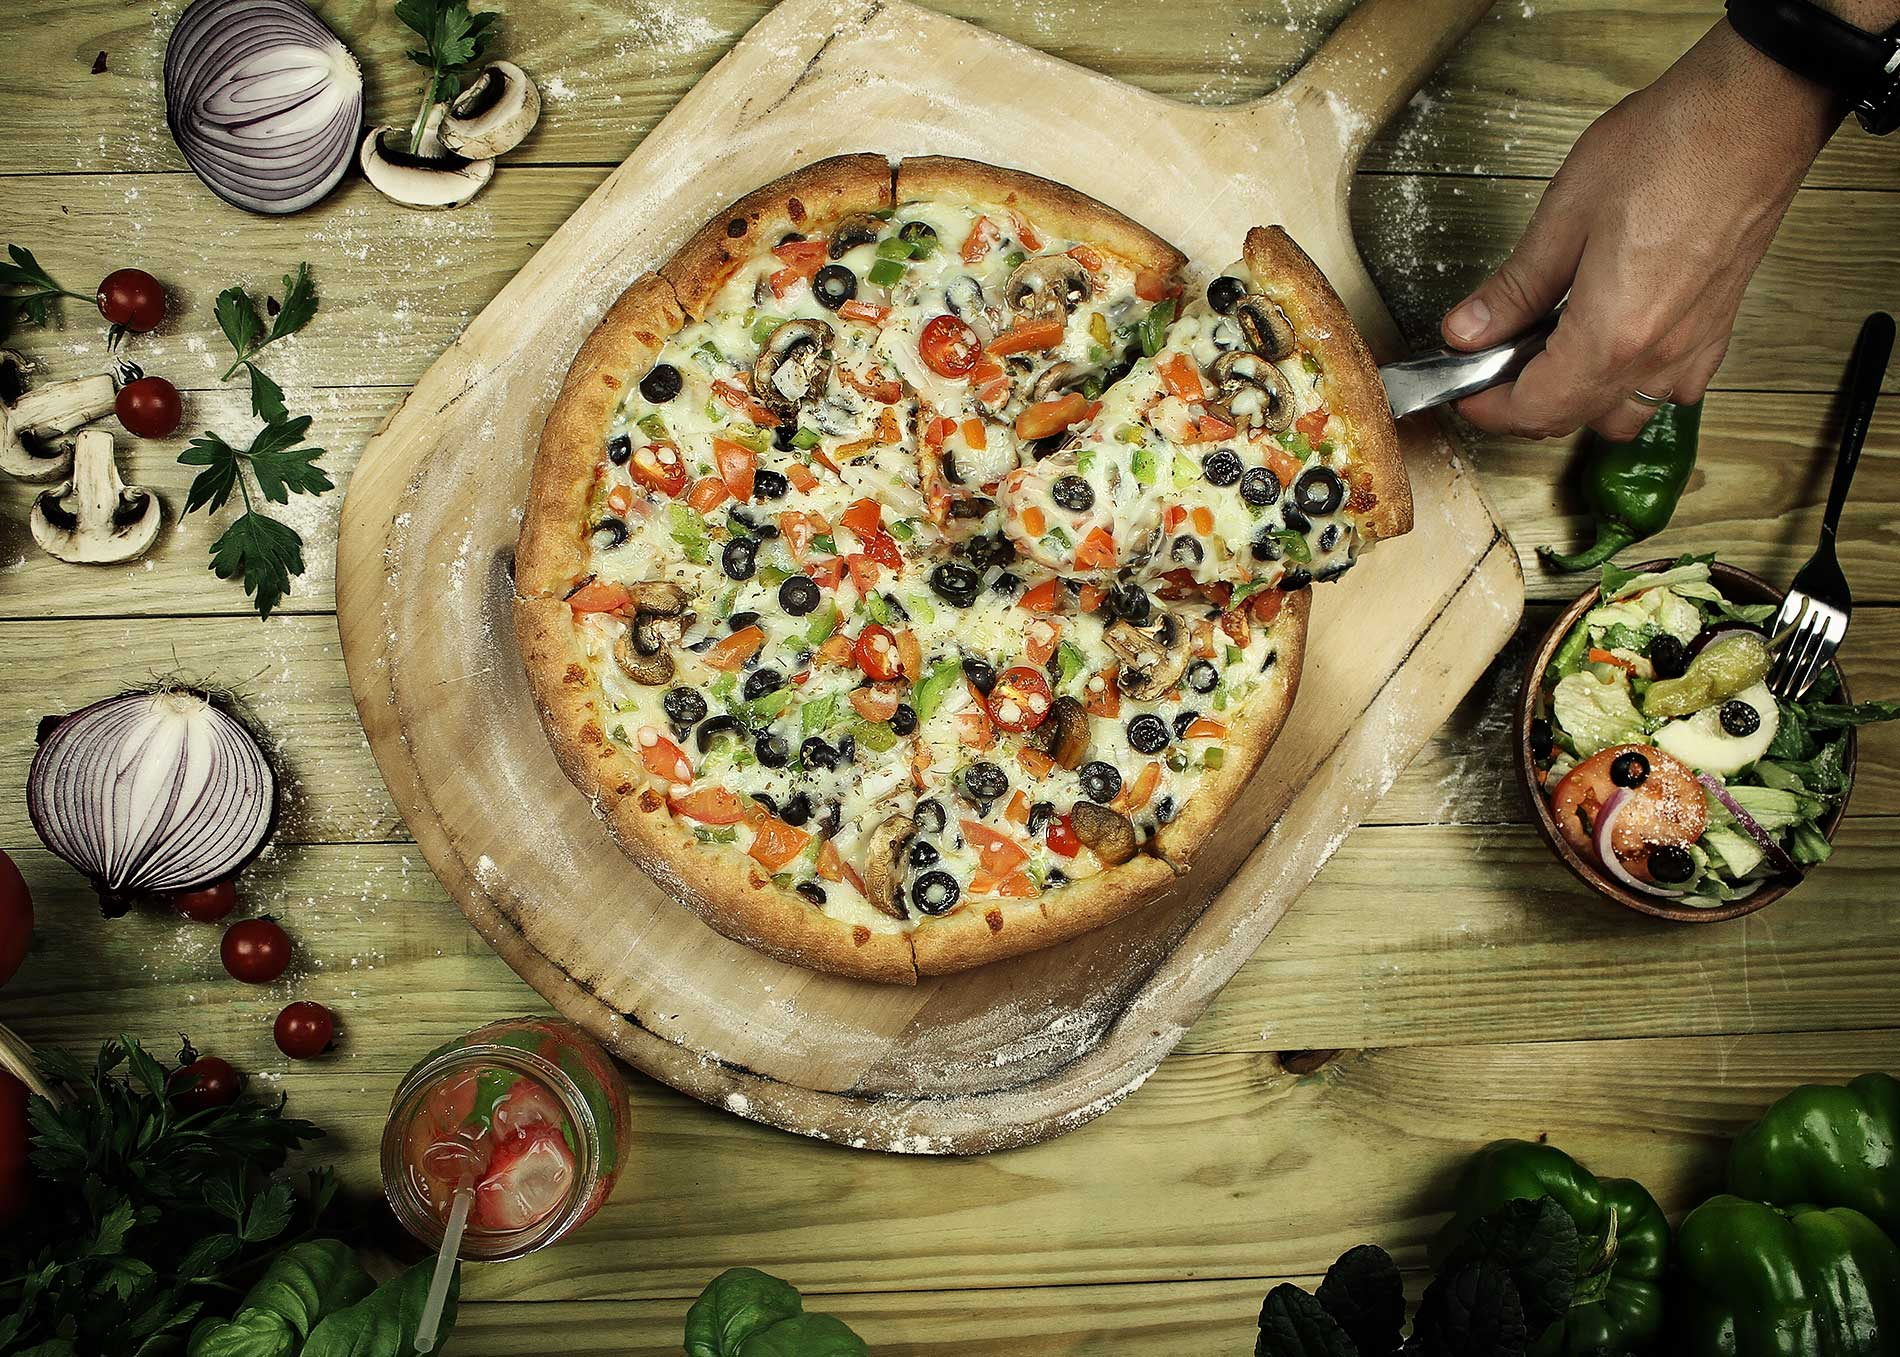 How Can You Celebrate World Vegetarian Day?